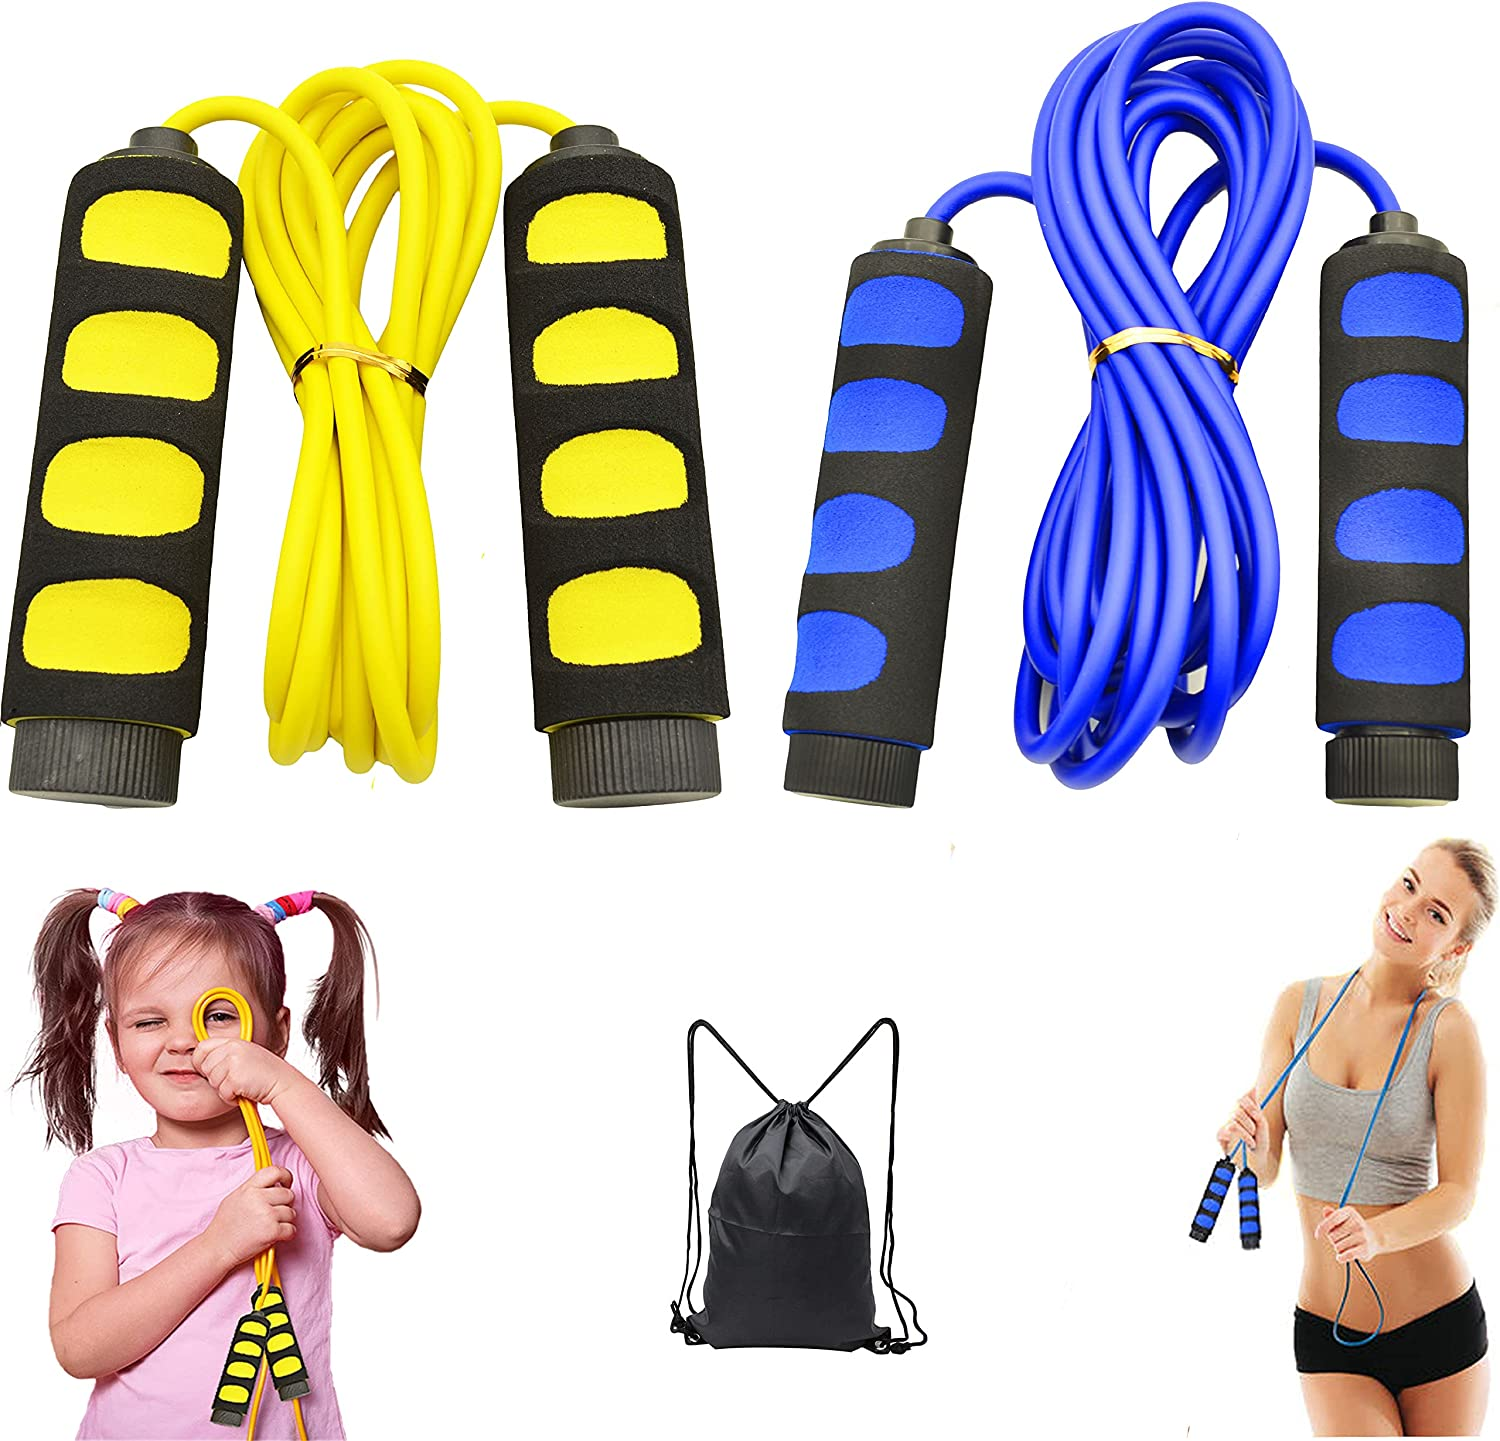 Plastic Sport Skipping Speed Jump Rope Weighted Adjustable Cardio Fitness Kids N